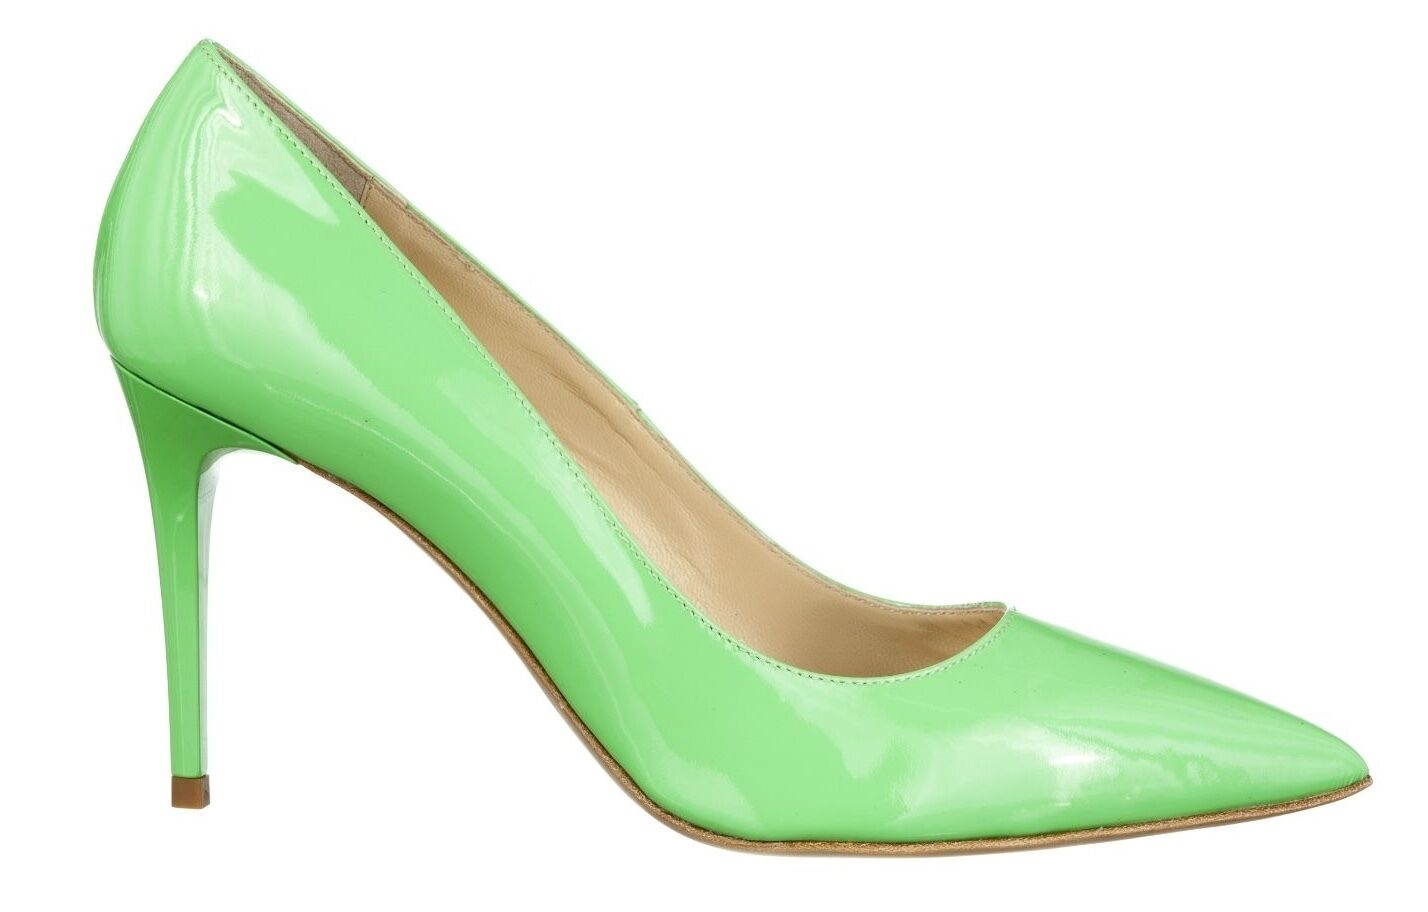 MORI MADE IN IN IN ITALY POINTY HIGH HEELS PUMPS DECOLTE zapatos LEATHER verde verde 38  Las ventas en línea ahorran un 70%.